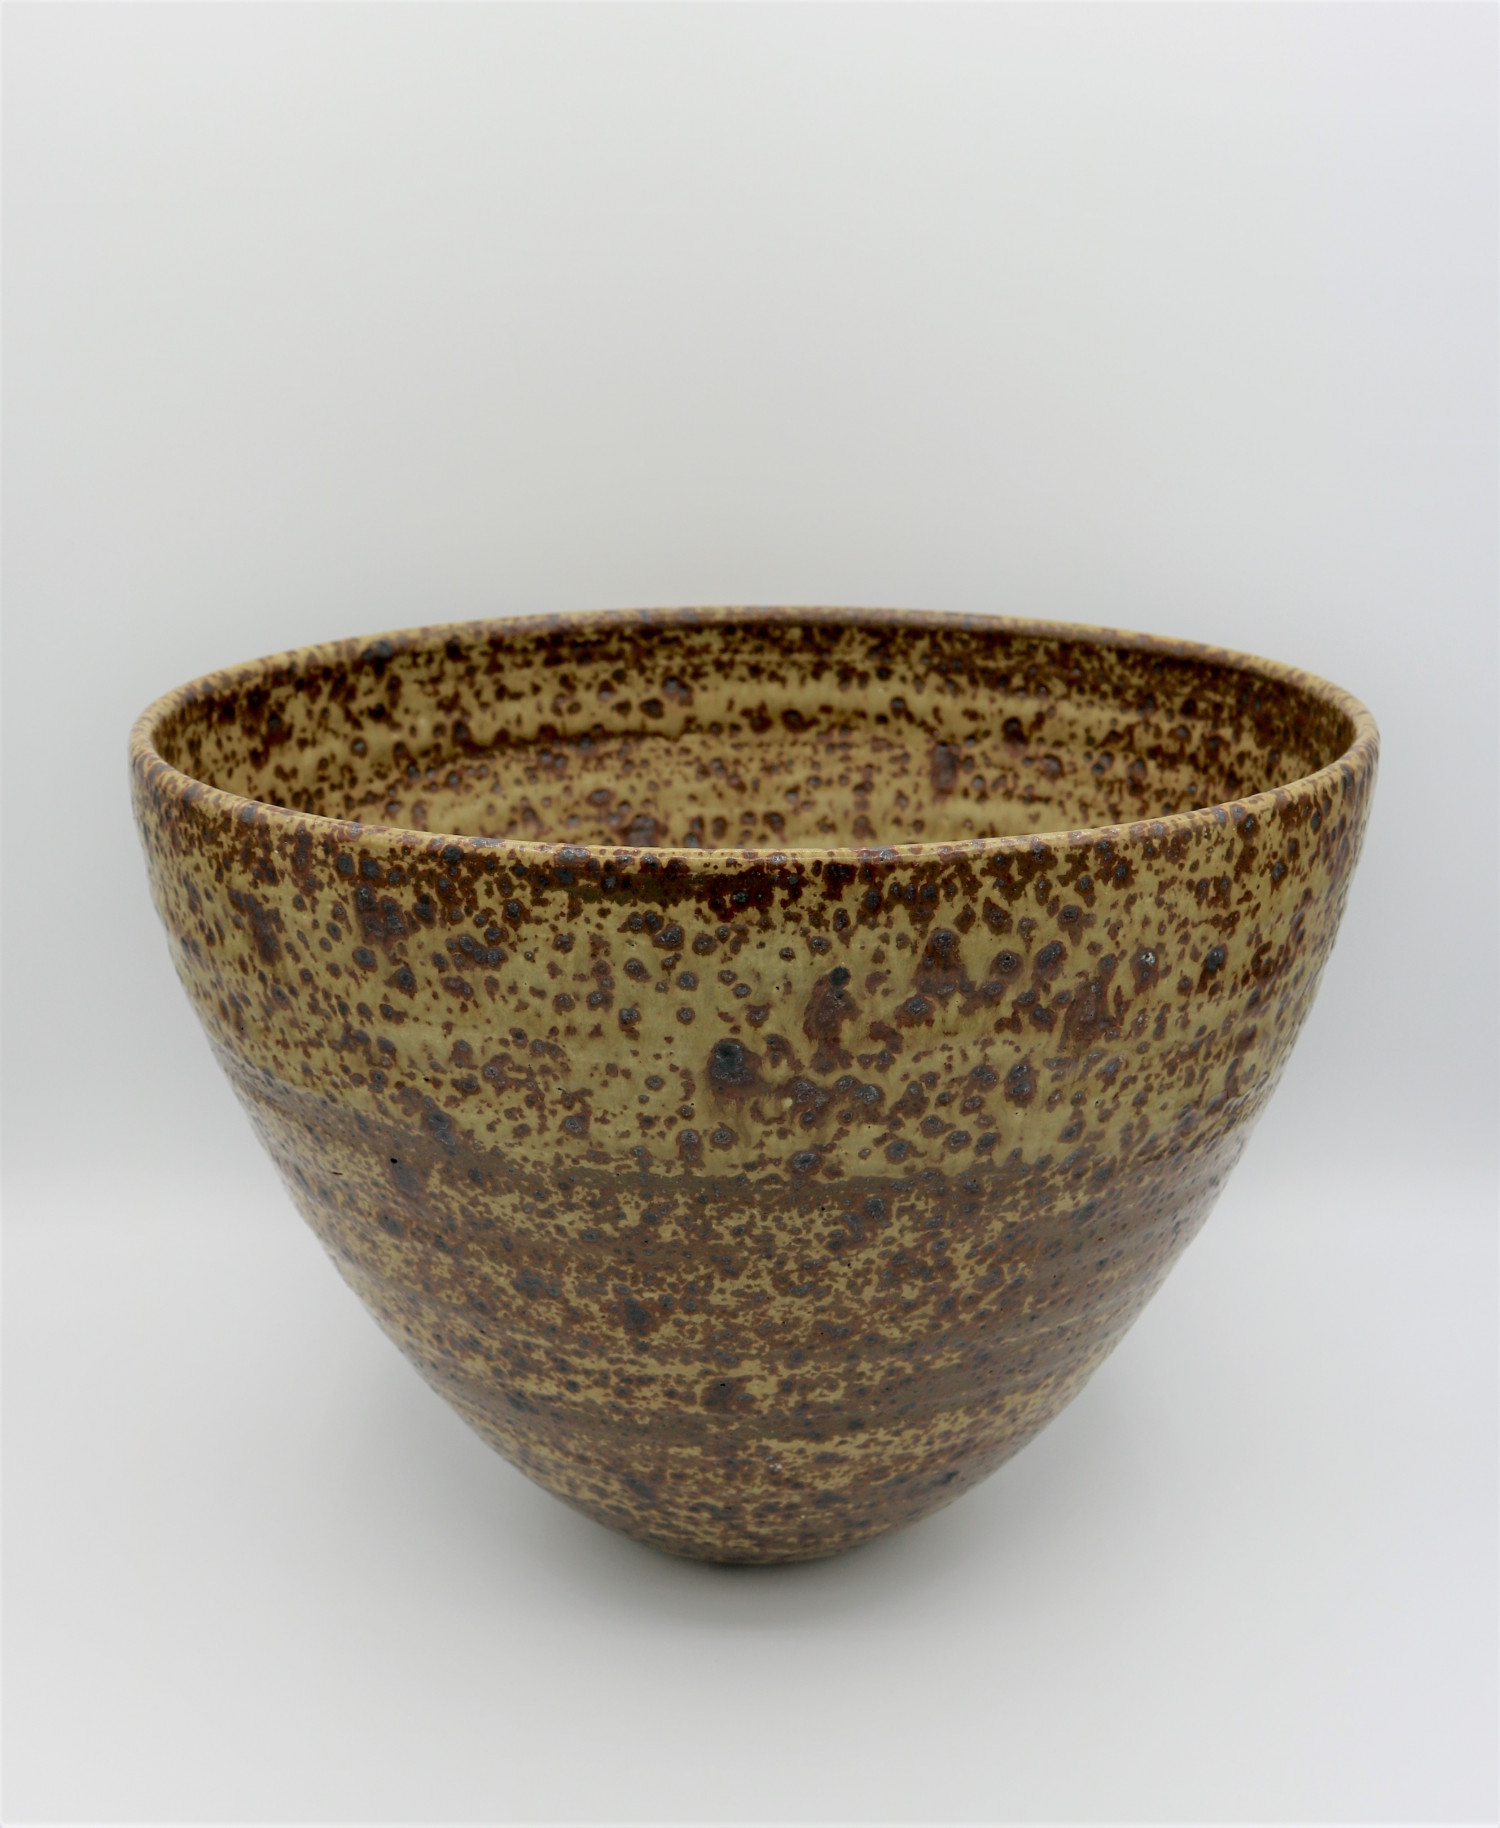 A Magnificent Large Early Bowl